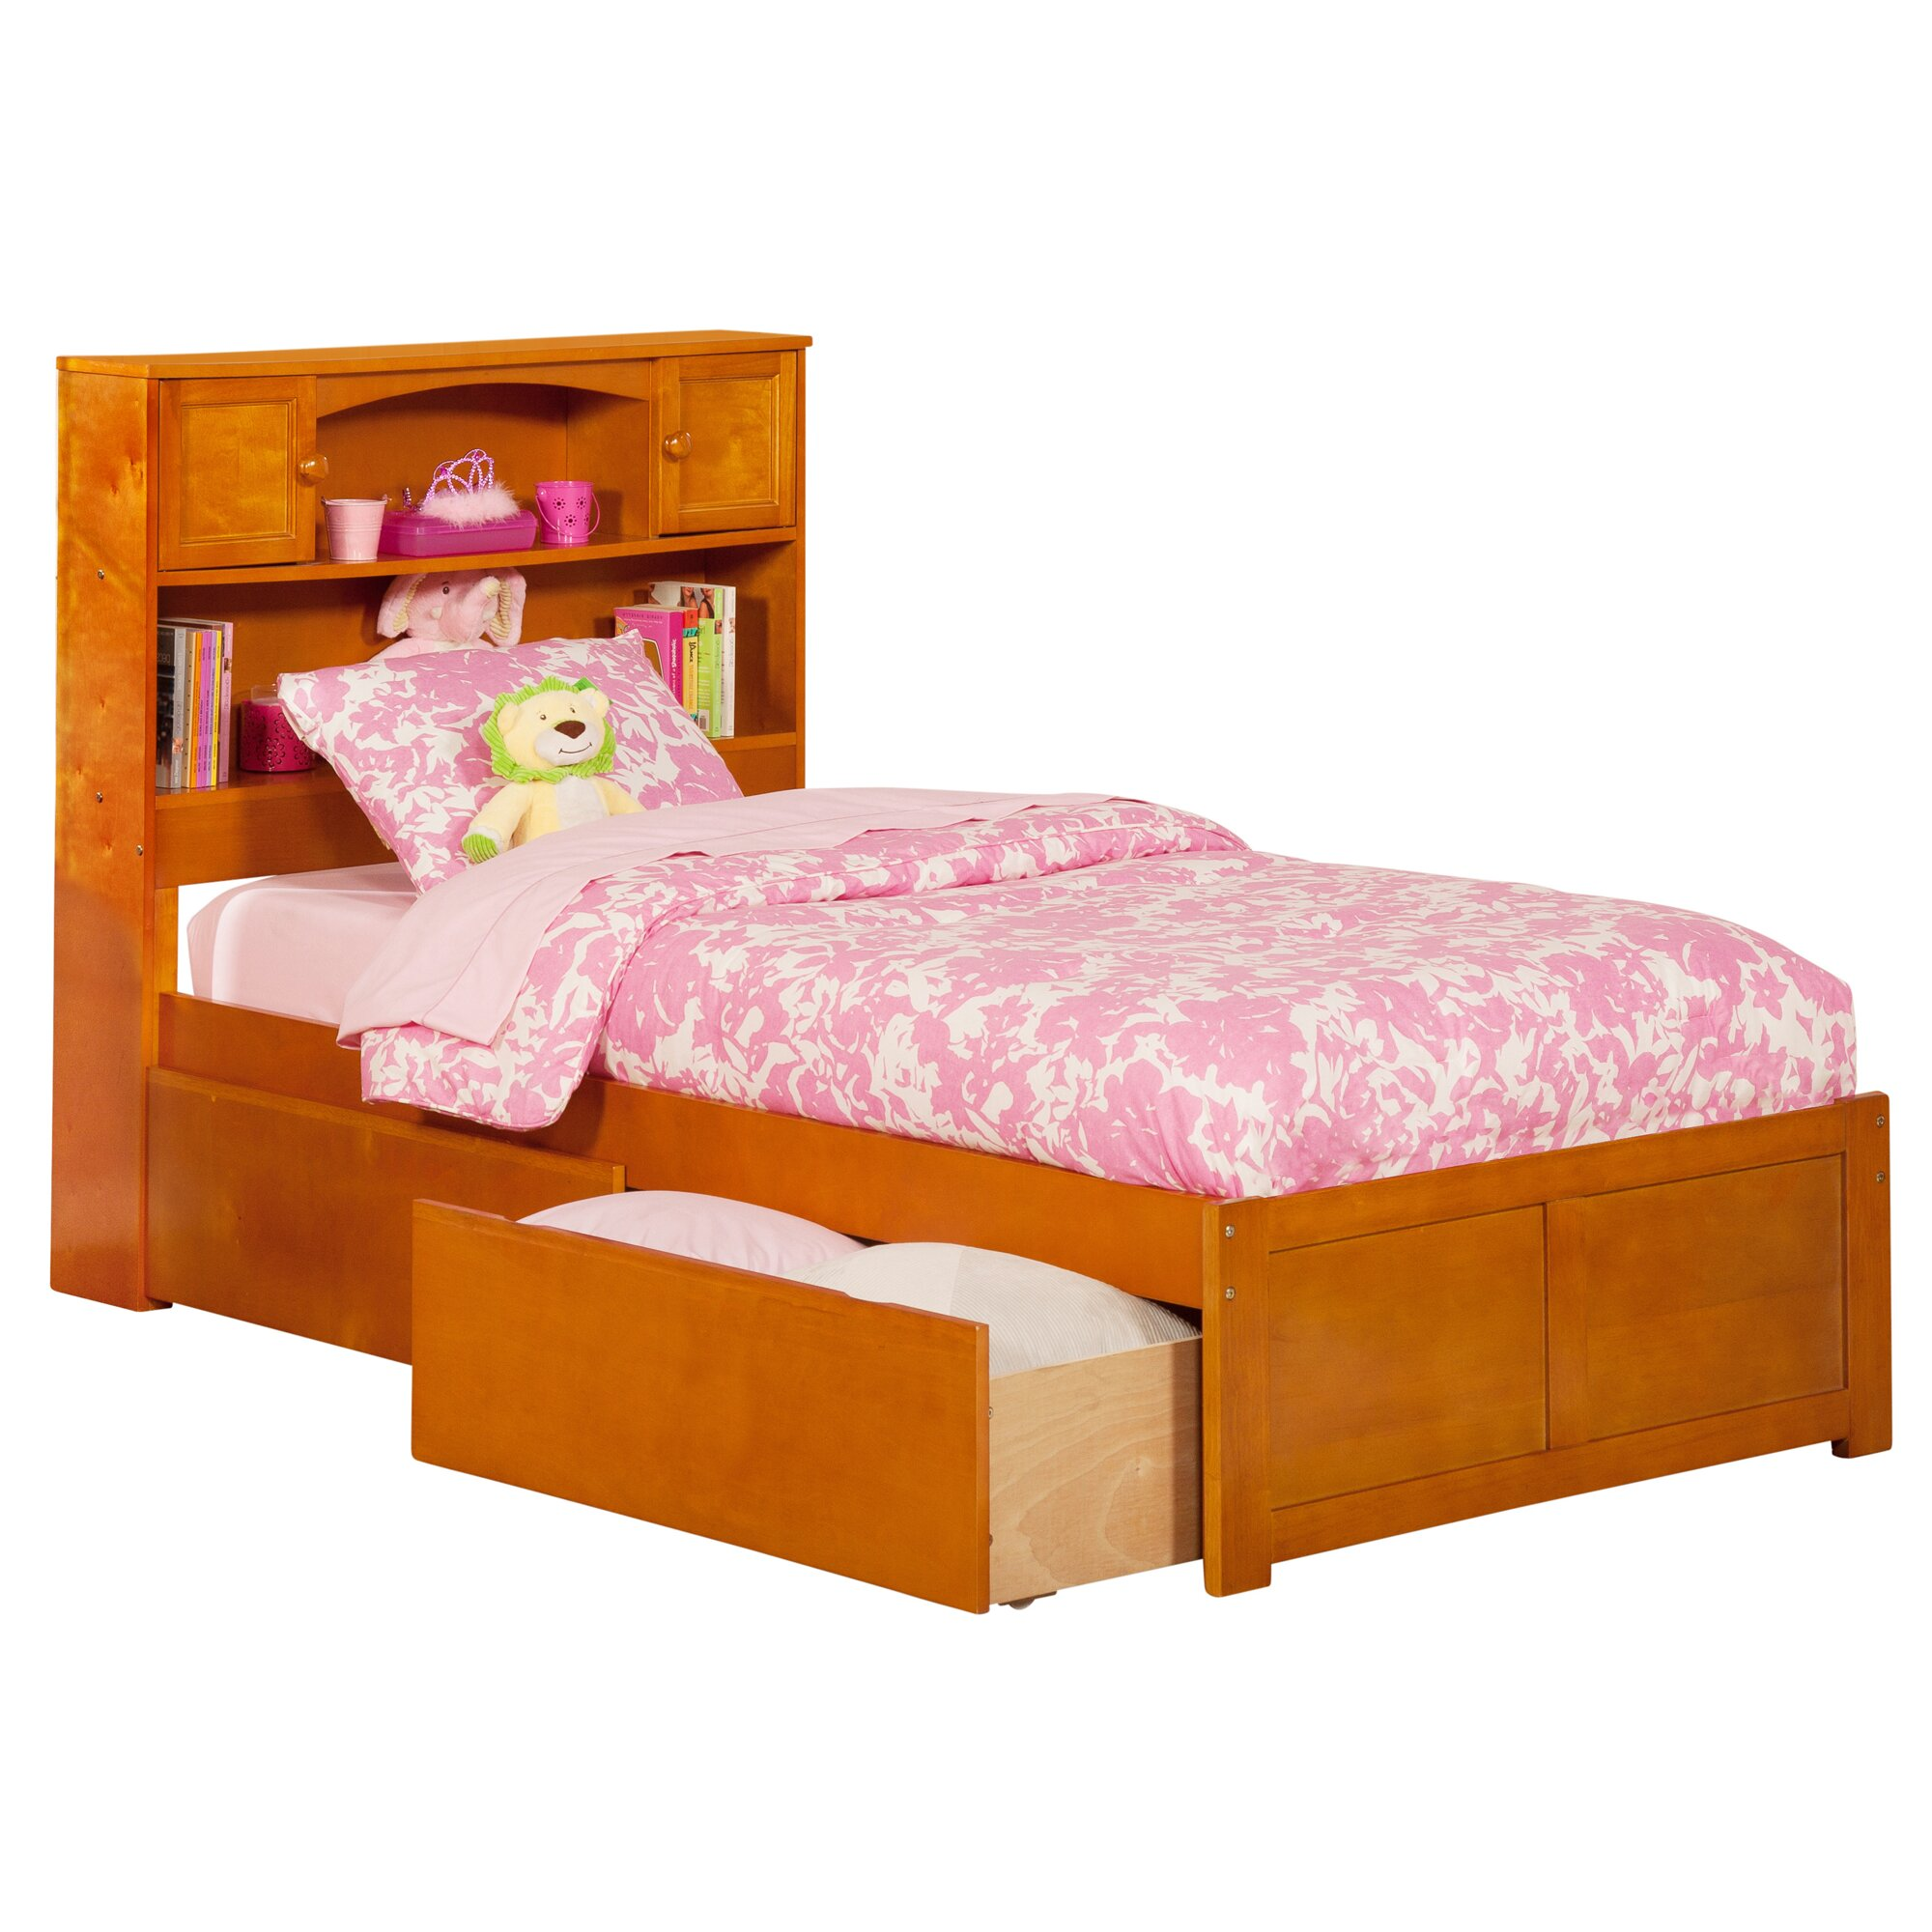 New Bookcase Toy Box White Finish Bedroom Playroom Child: Atlantic Furniture Newport Extra Long Twin Platform Bed